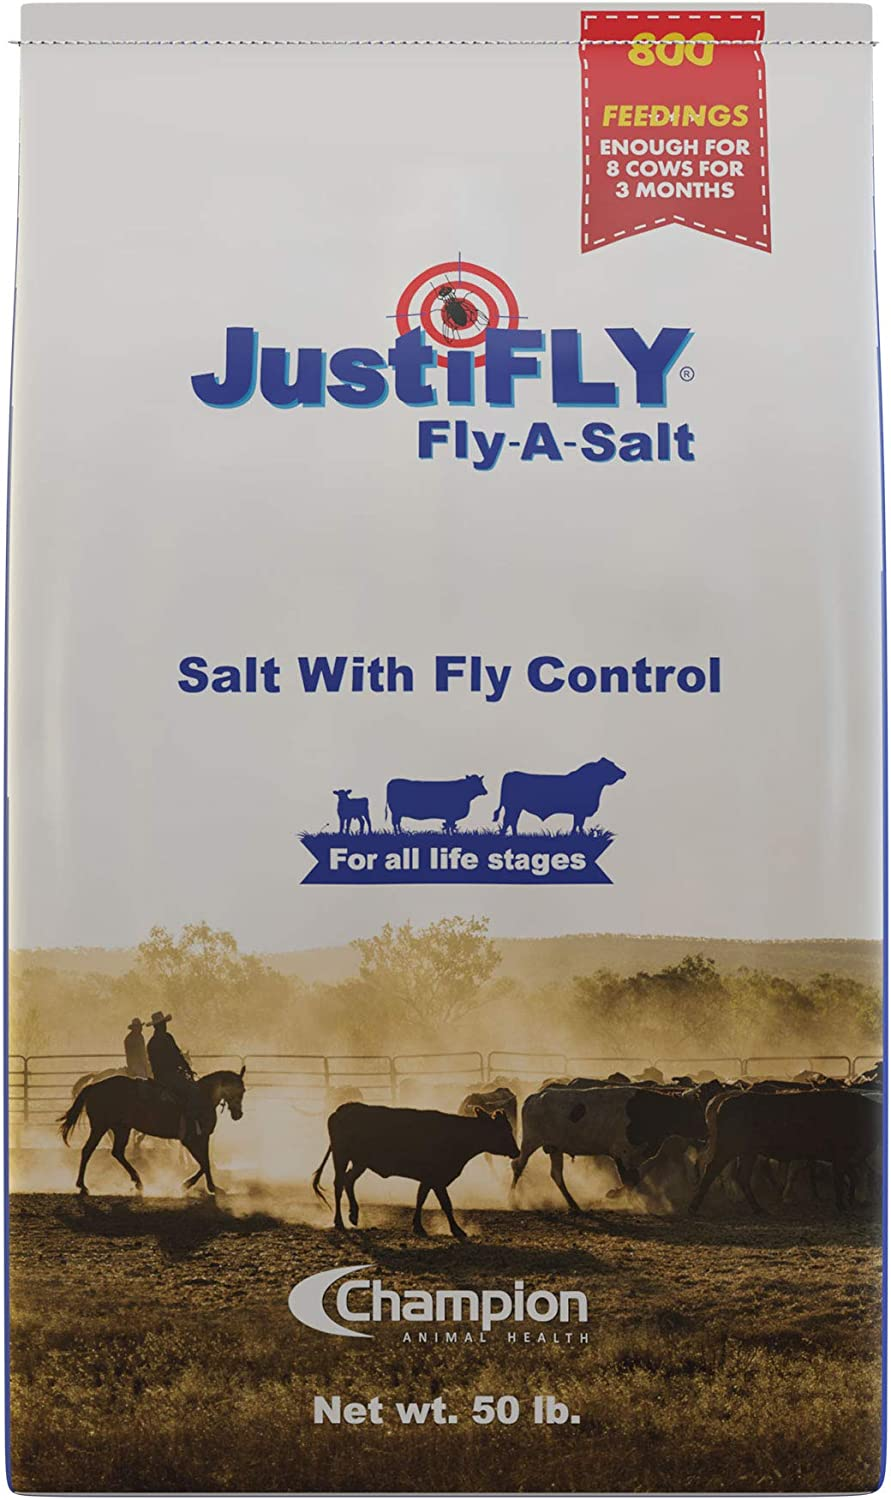 JustiFLY Fly-A-Salt Cattle Fly Control Salt Bag, 50 lb | 800 Feedings Per Salt Bag. One Bag Feeds 8 Cows for 3 Months When You Purchase 5 Or More